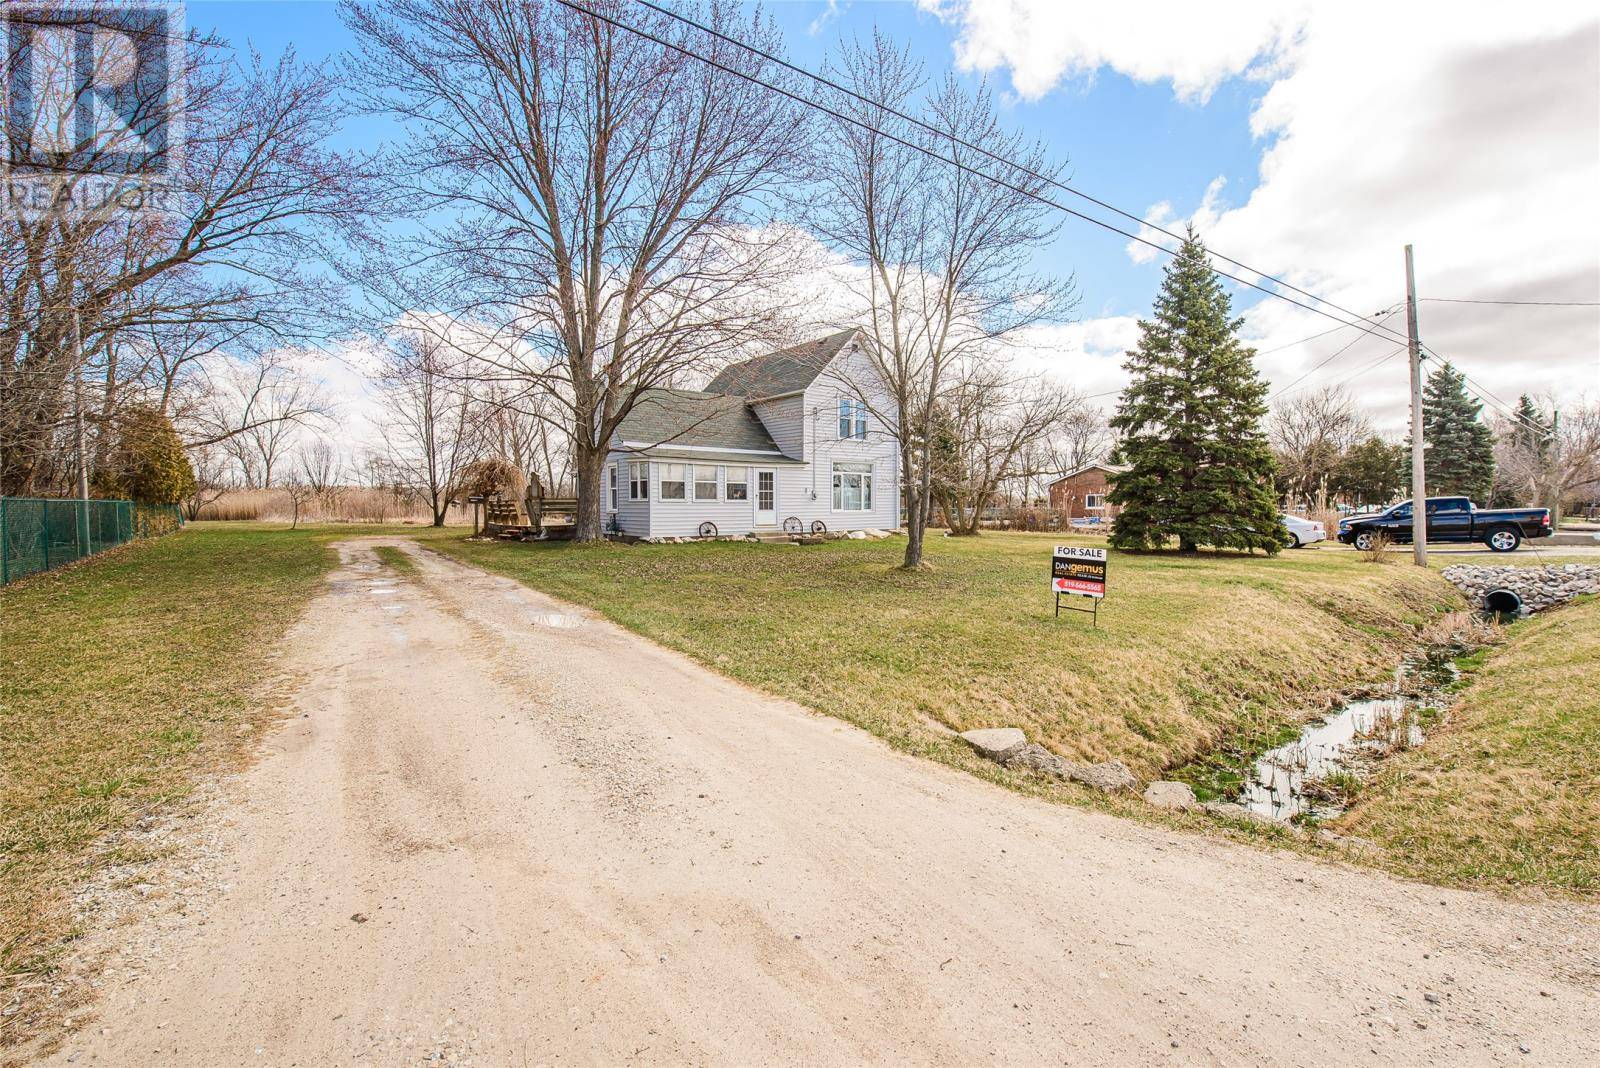 House for sale at 5290 Huron Church Line Rd Lasalle Ontario - MLS: 20003576